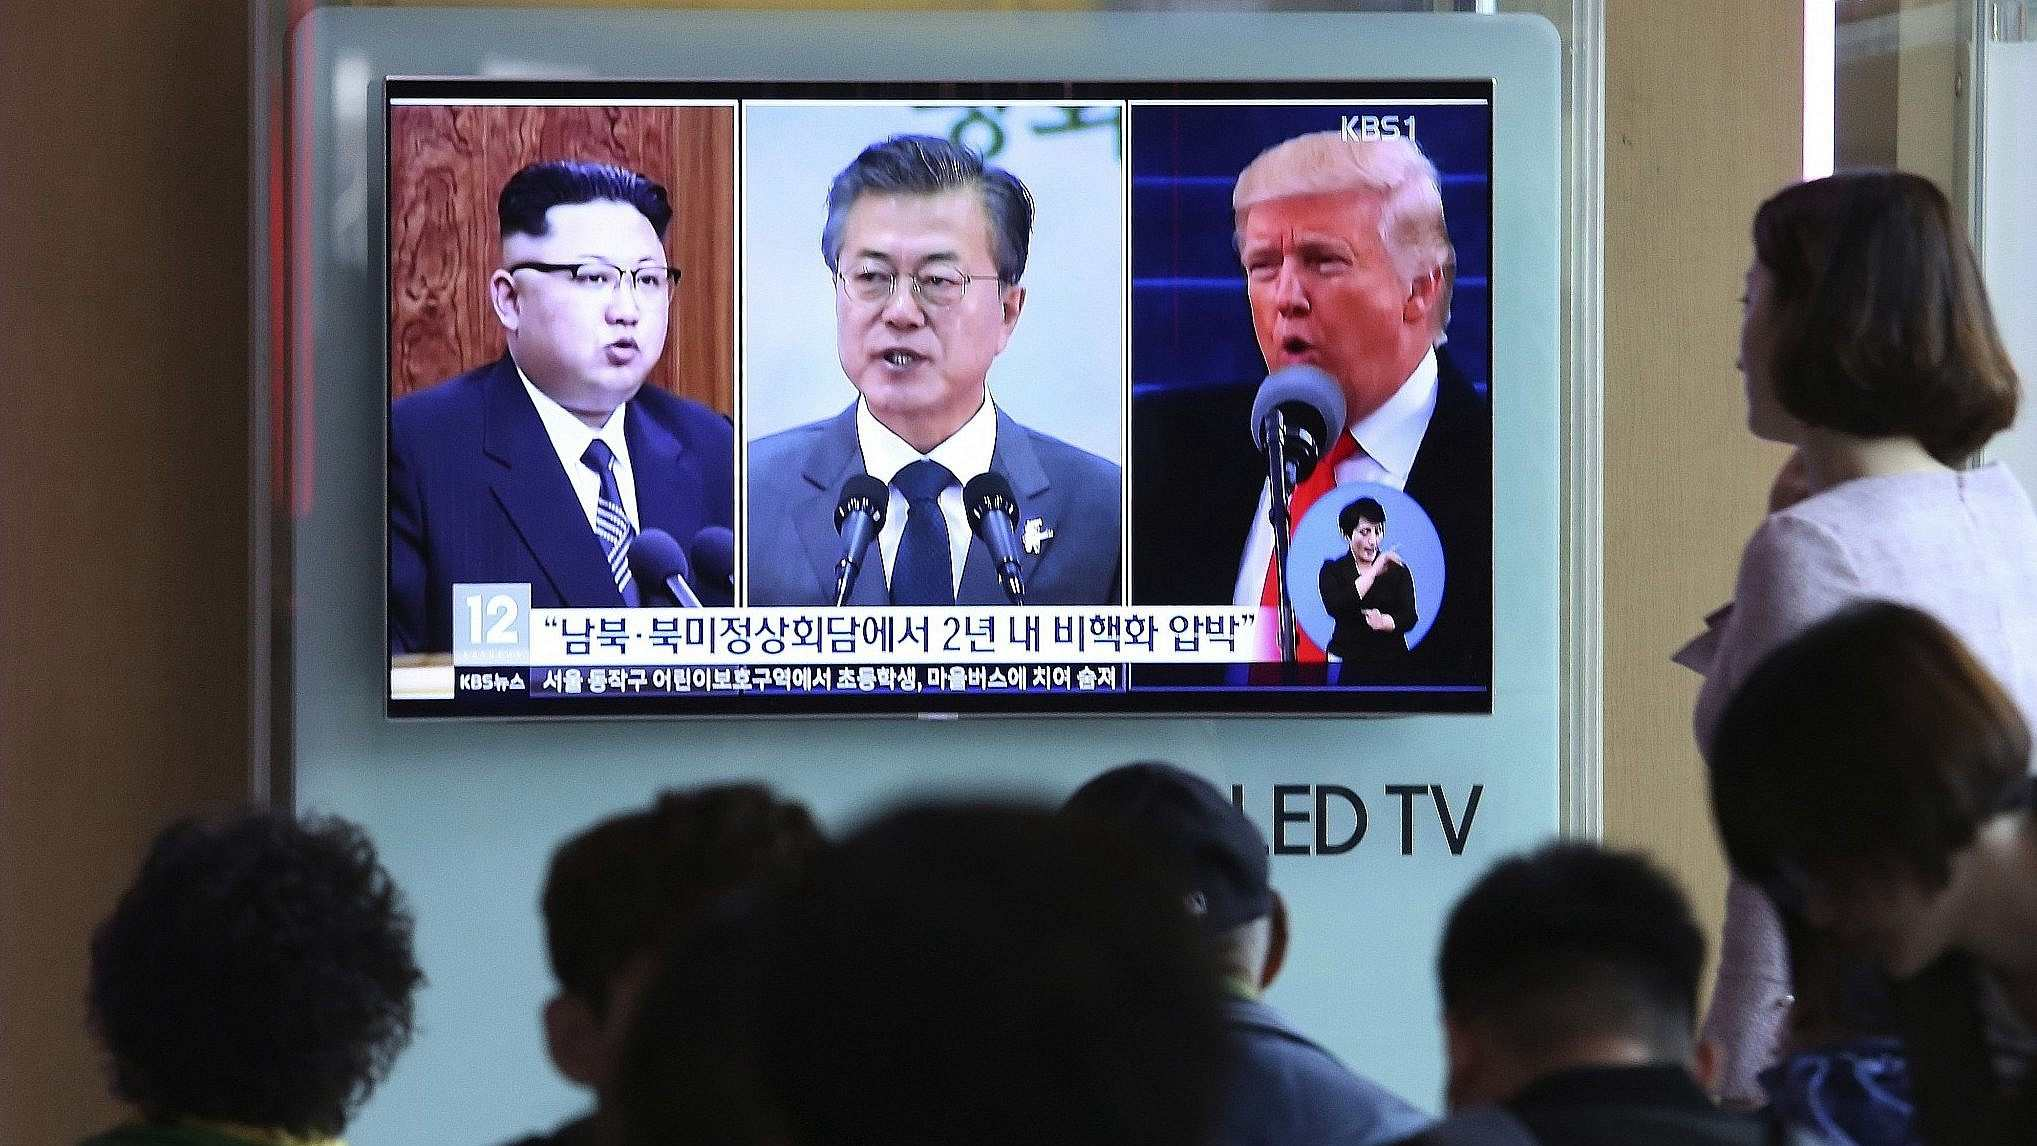 Moon Jae-in may join DPRK, US in Singapore for three-way summit